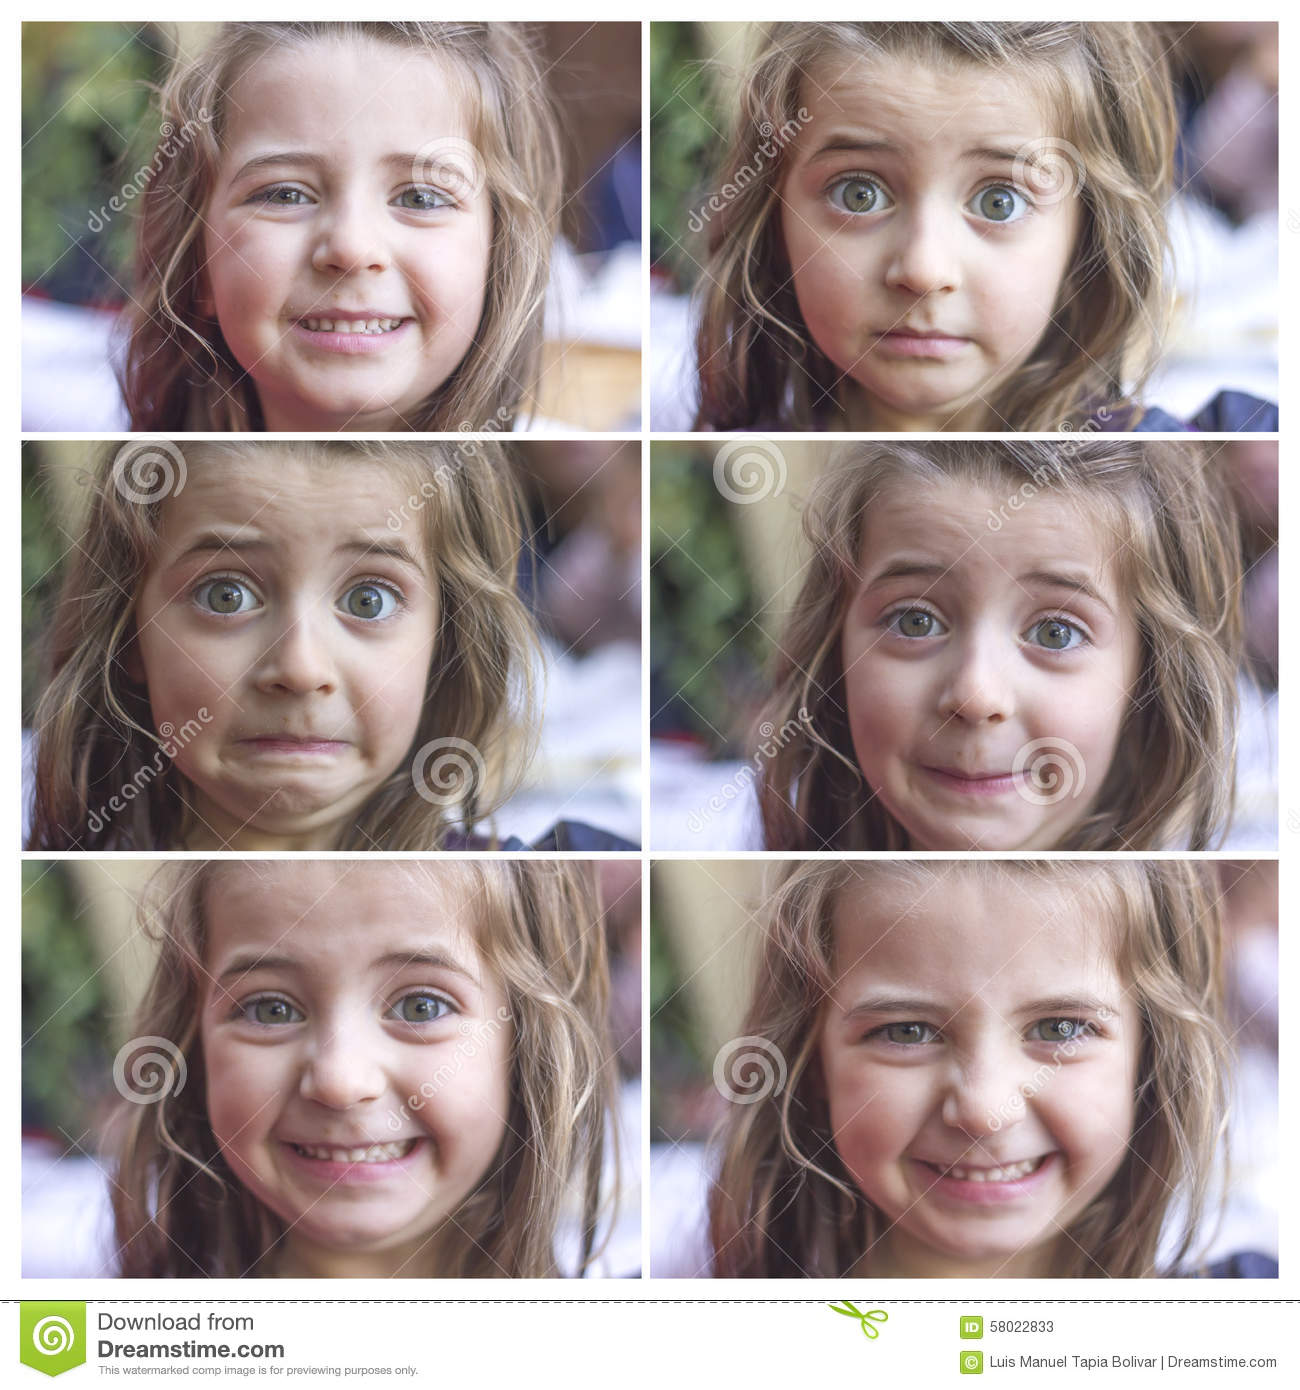 Gender difference in facial expressions